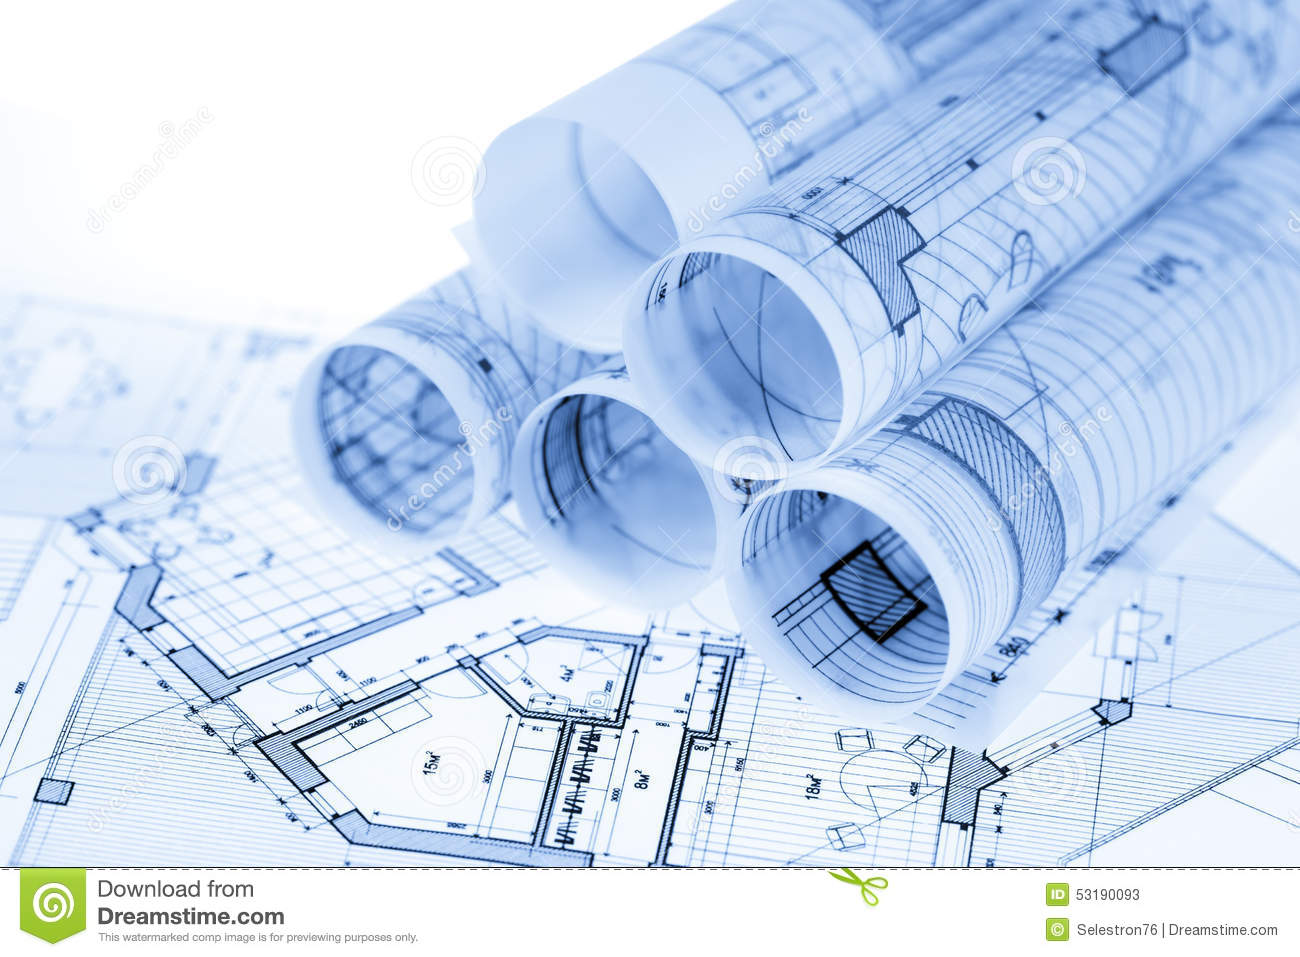 Rolls of architecture blueprints stock illustration for Free blueprints online